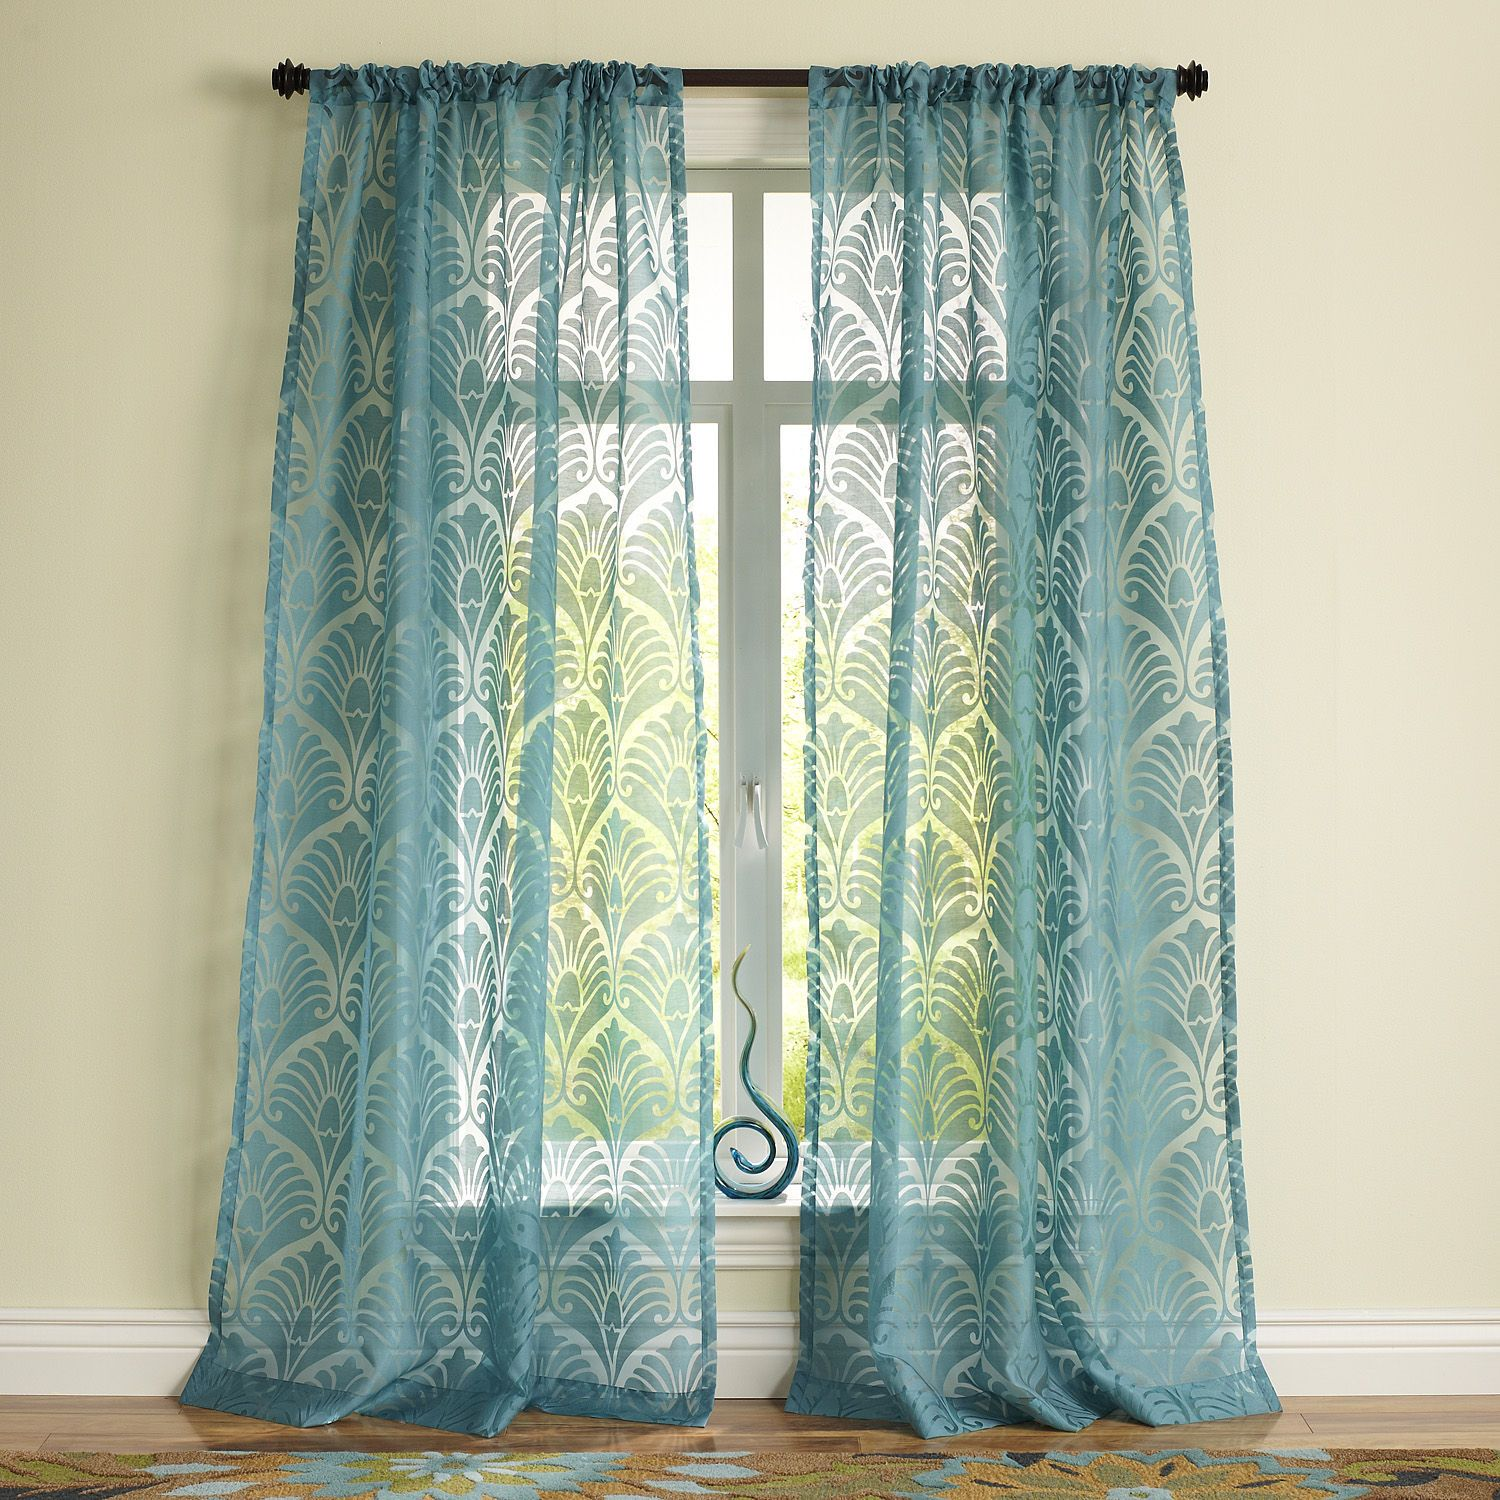 peacock burnout curtain pier 1 imports case alicia pinterest peacock burnout curtain 2 side panels for family room